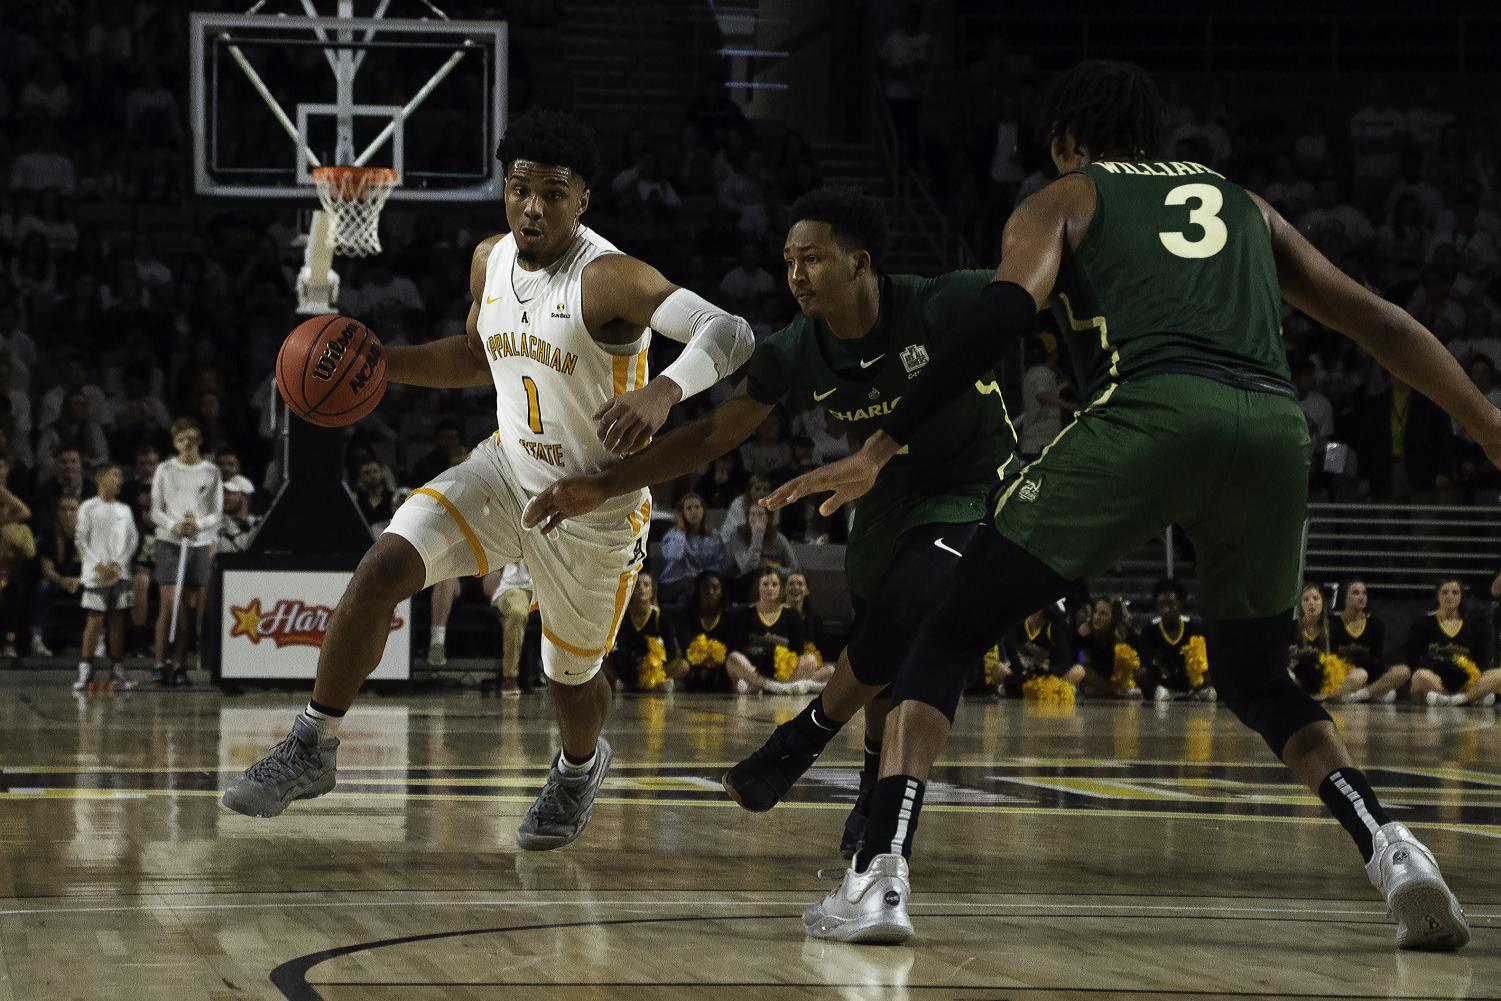 App State junior guard and leading scorer Justin Forrest drives during the Mountaineers' 64-55 win over Charlotte on Nov. 21.